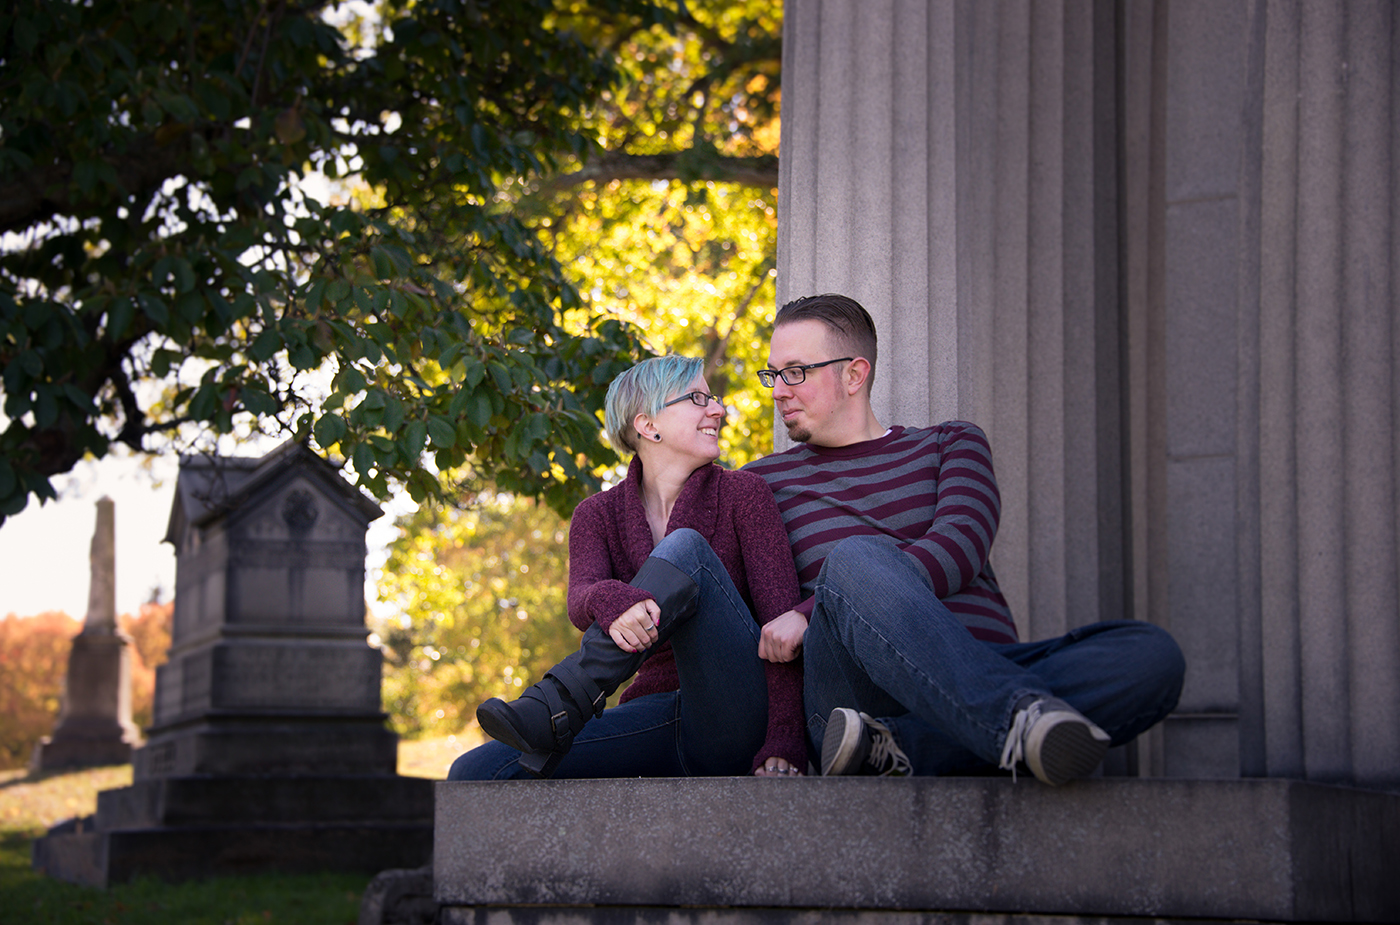 All Occasions Photography Albany NY - Engagement Photography Example 5